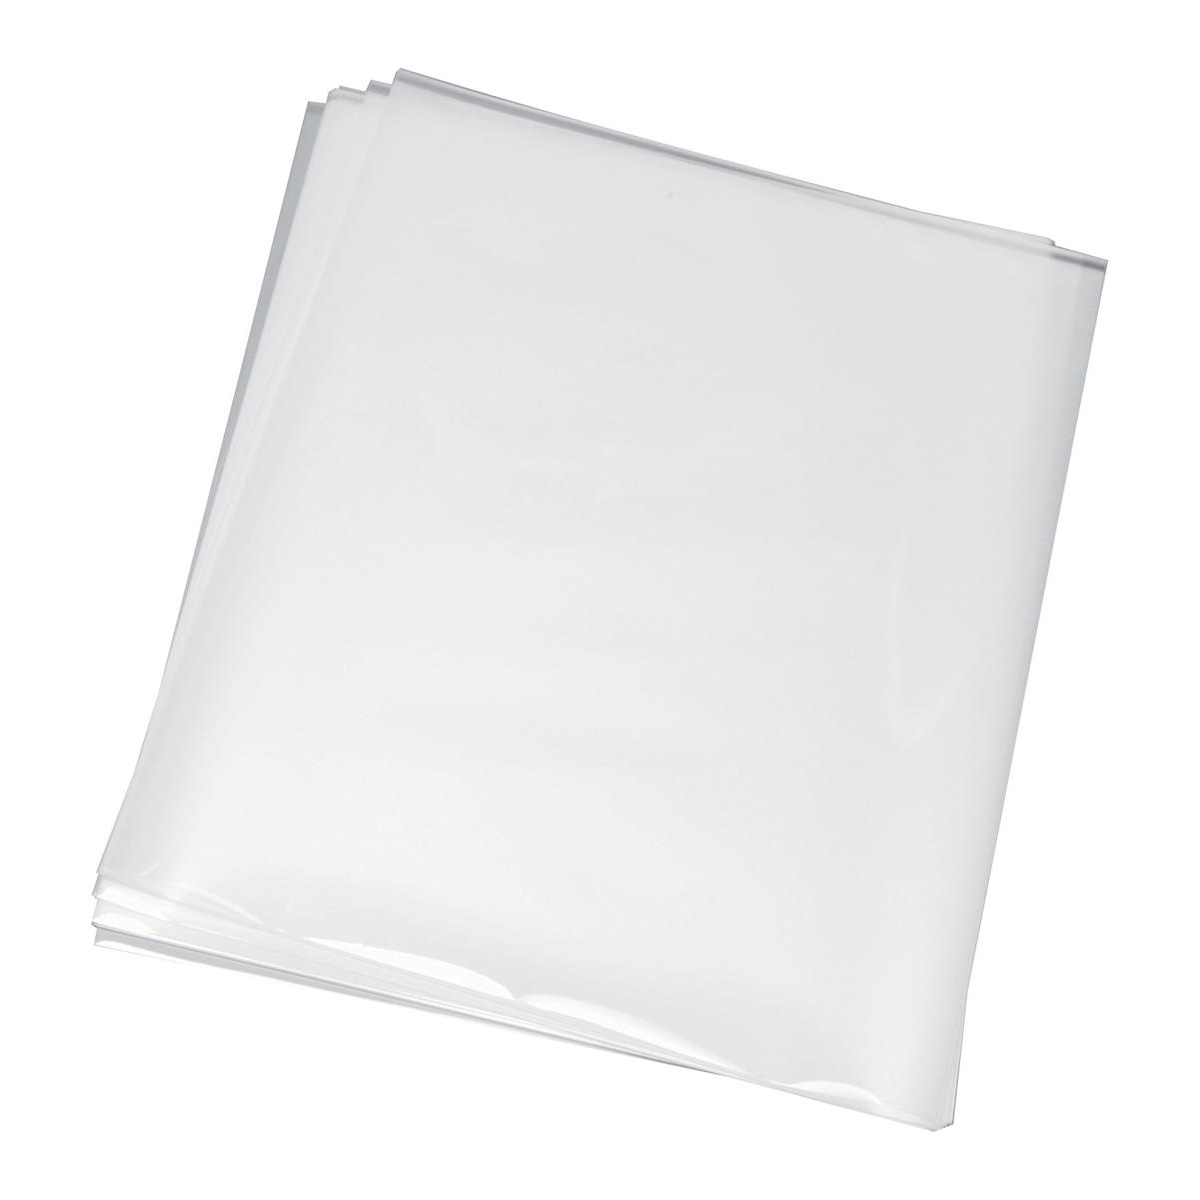 Laminating Film & Pockets GBC Laminating Pouches 150 Micron for A4 Ref 3740400 Pack 100